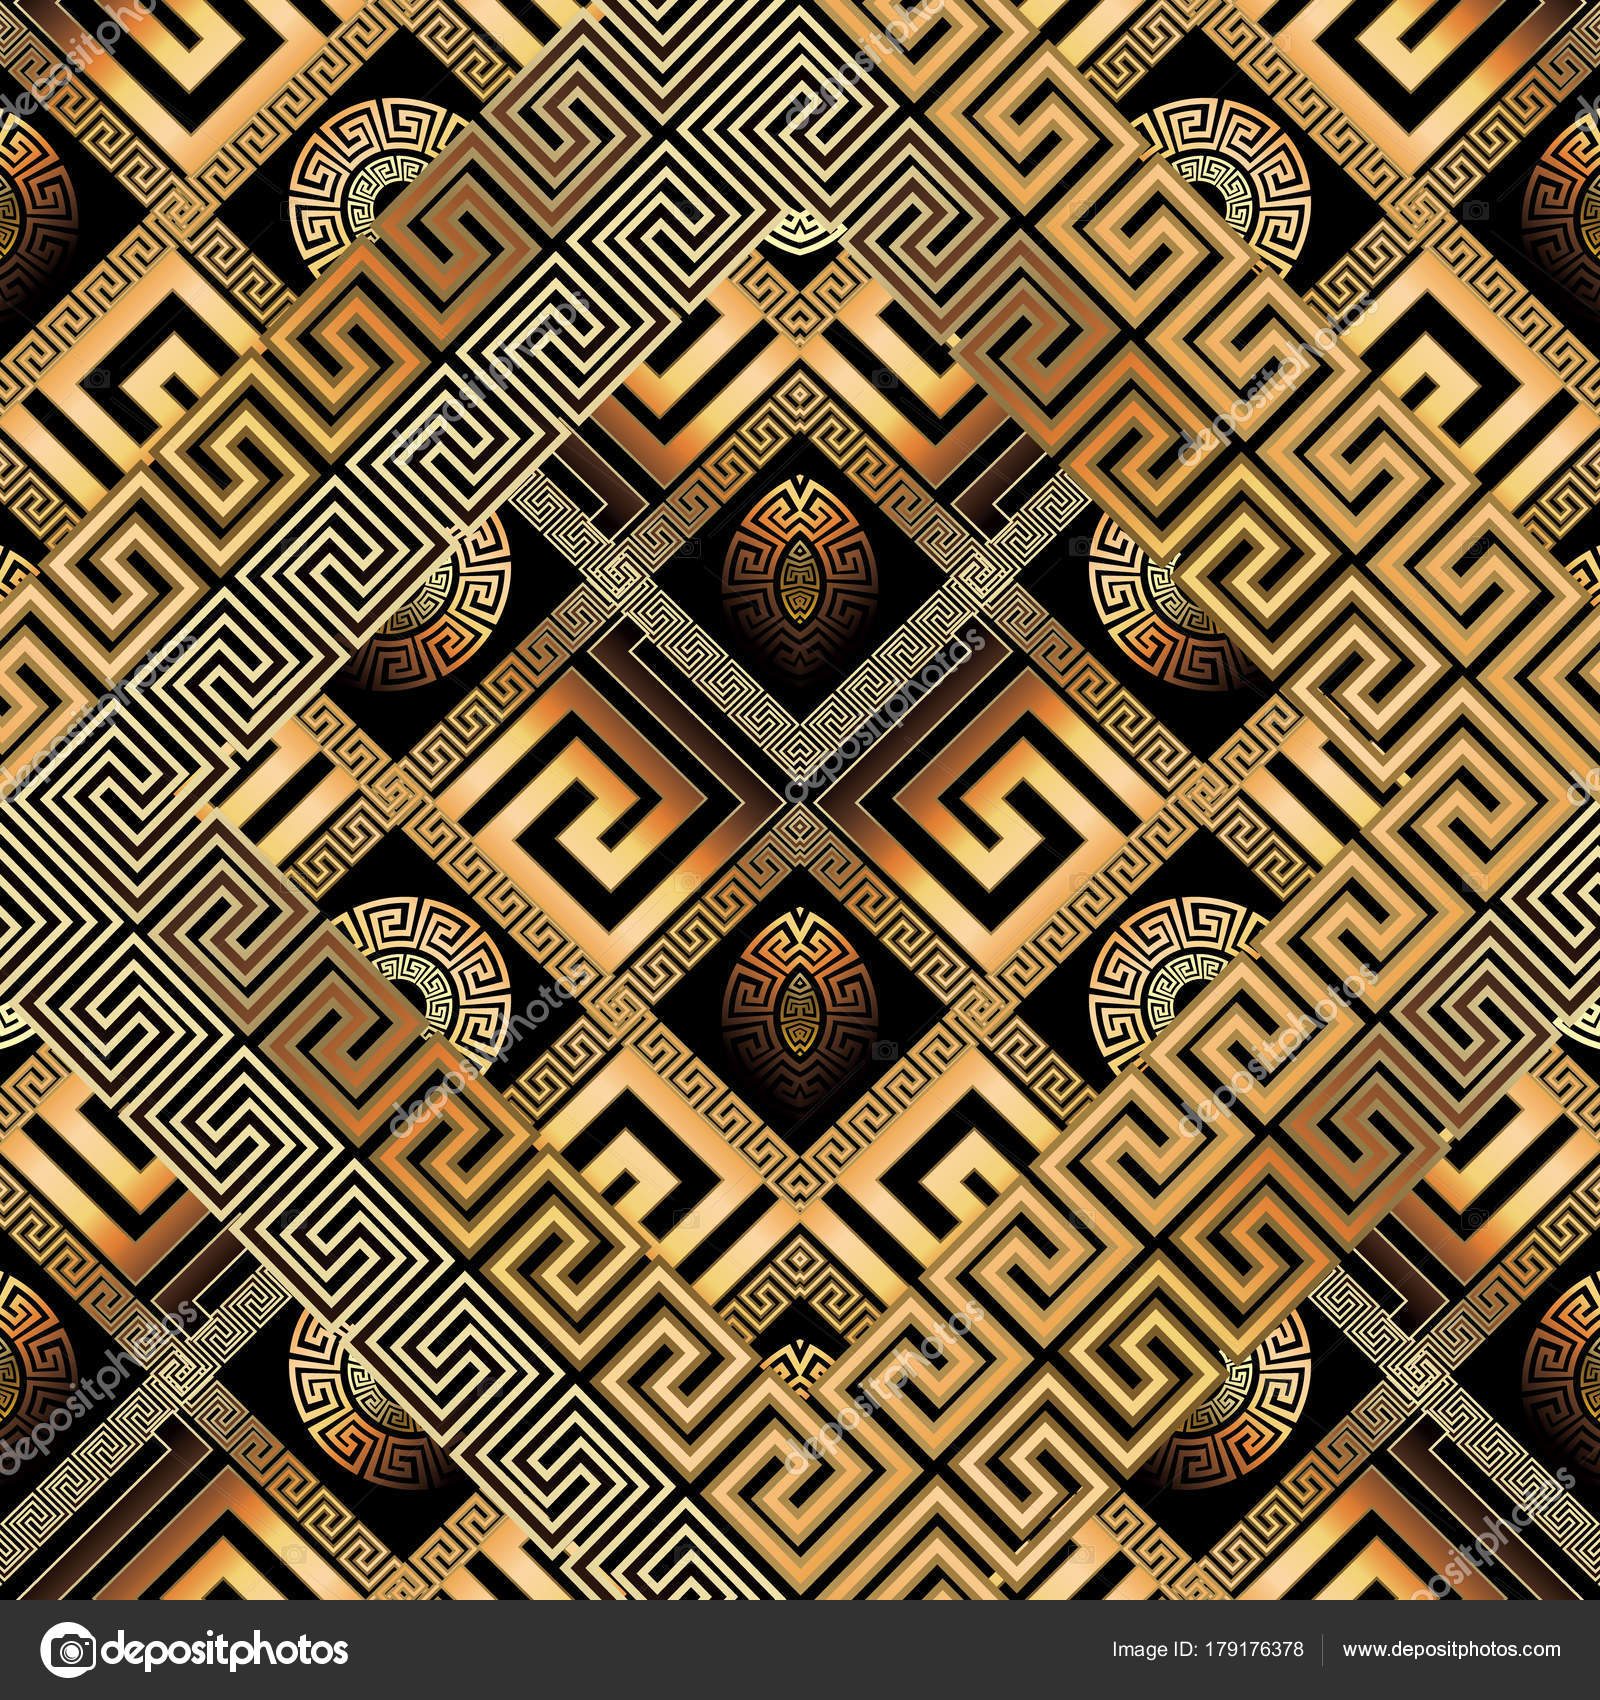 eb3bc600af3 Abstract black gold greek key background. 3d wallpaper. Geometric trendy  ornament